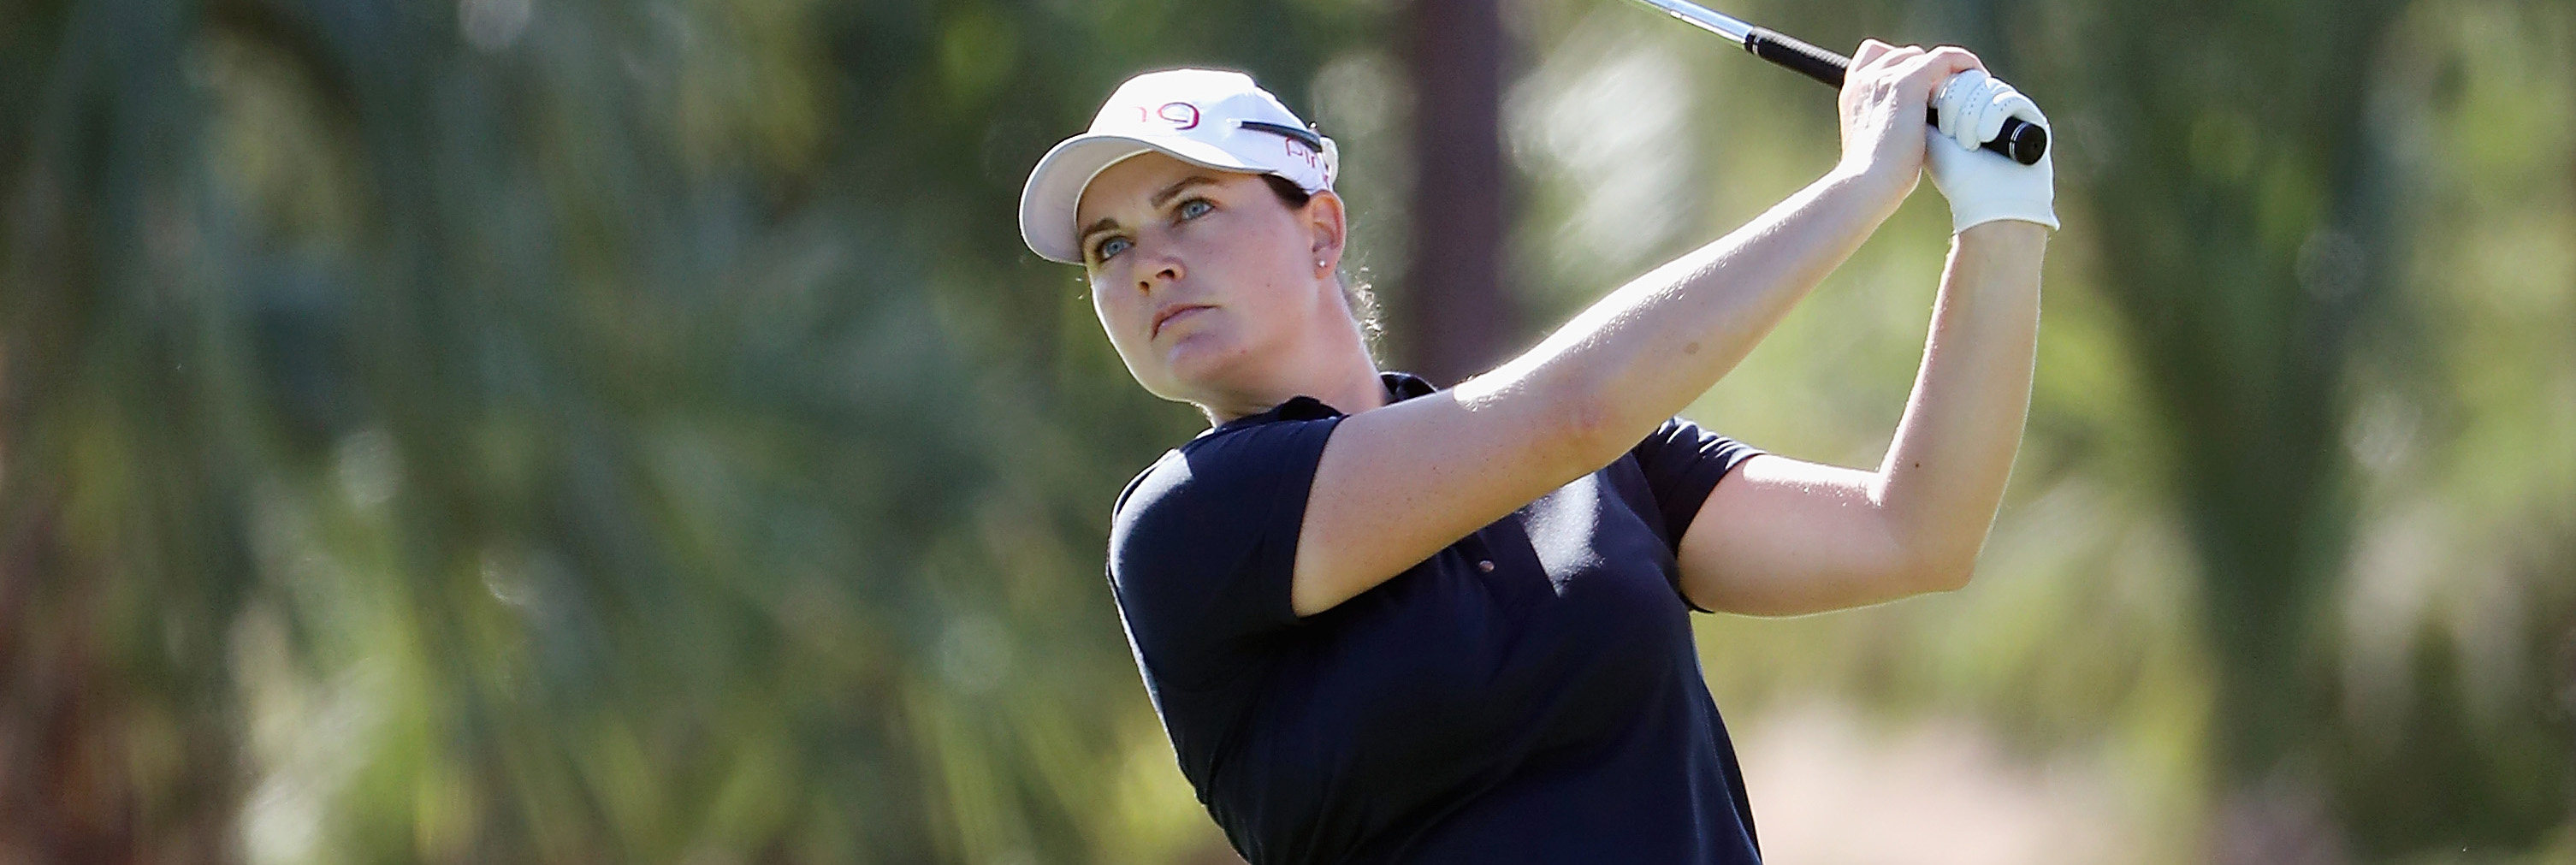 masson women Most consecutive cuts made – 4 (2013 women's pga – 2014 us open) longest streak of top-10s – 1 caroline masson at the ladies european tour official site.